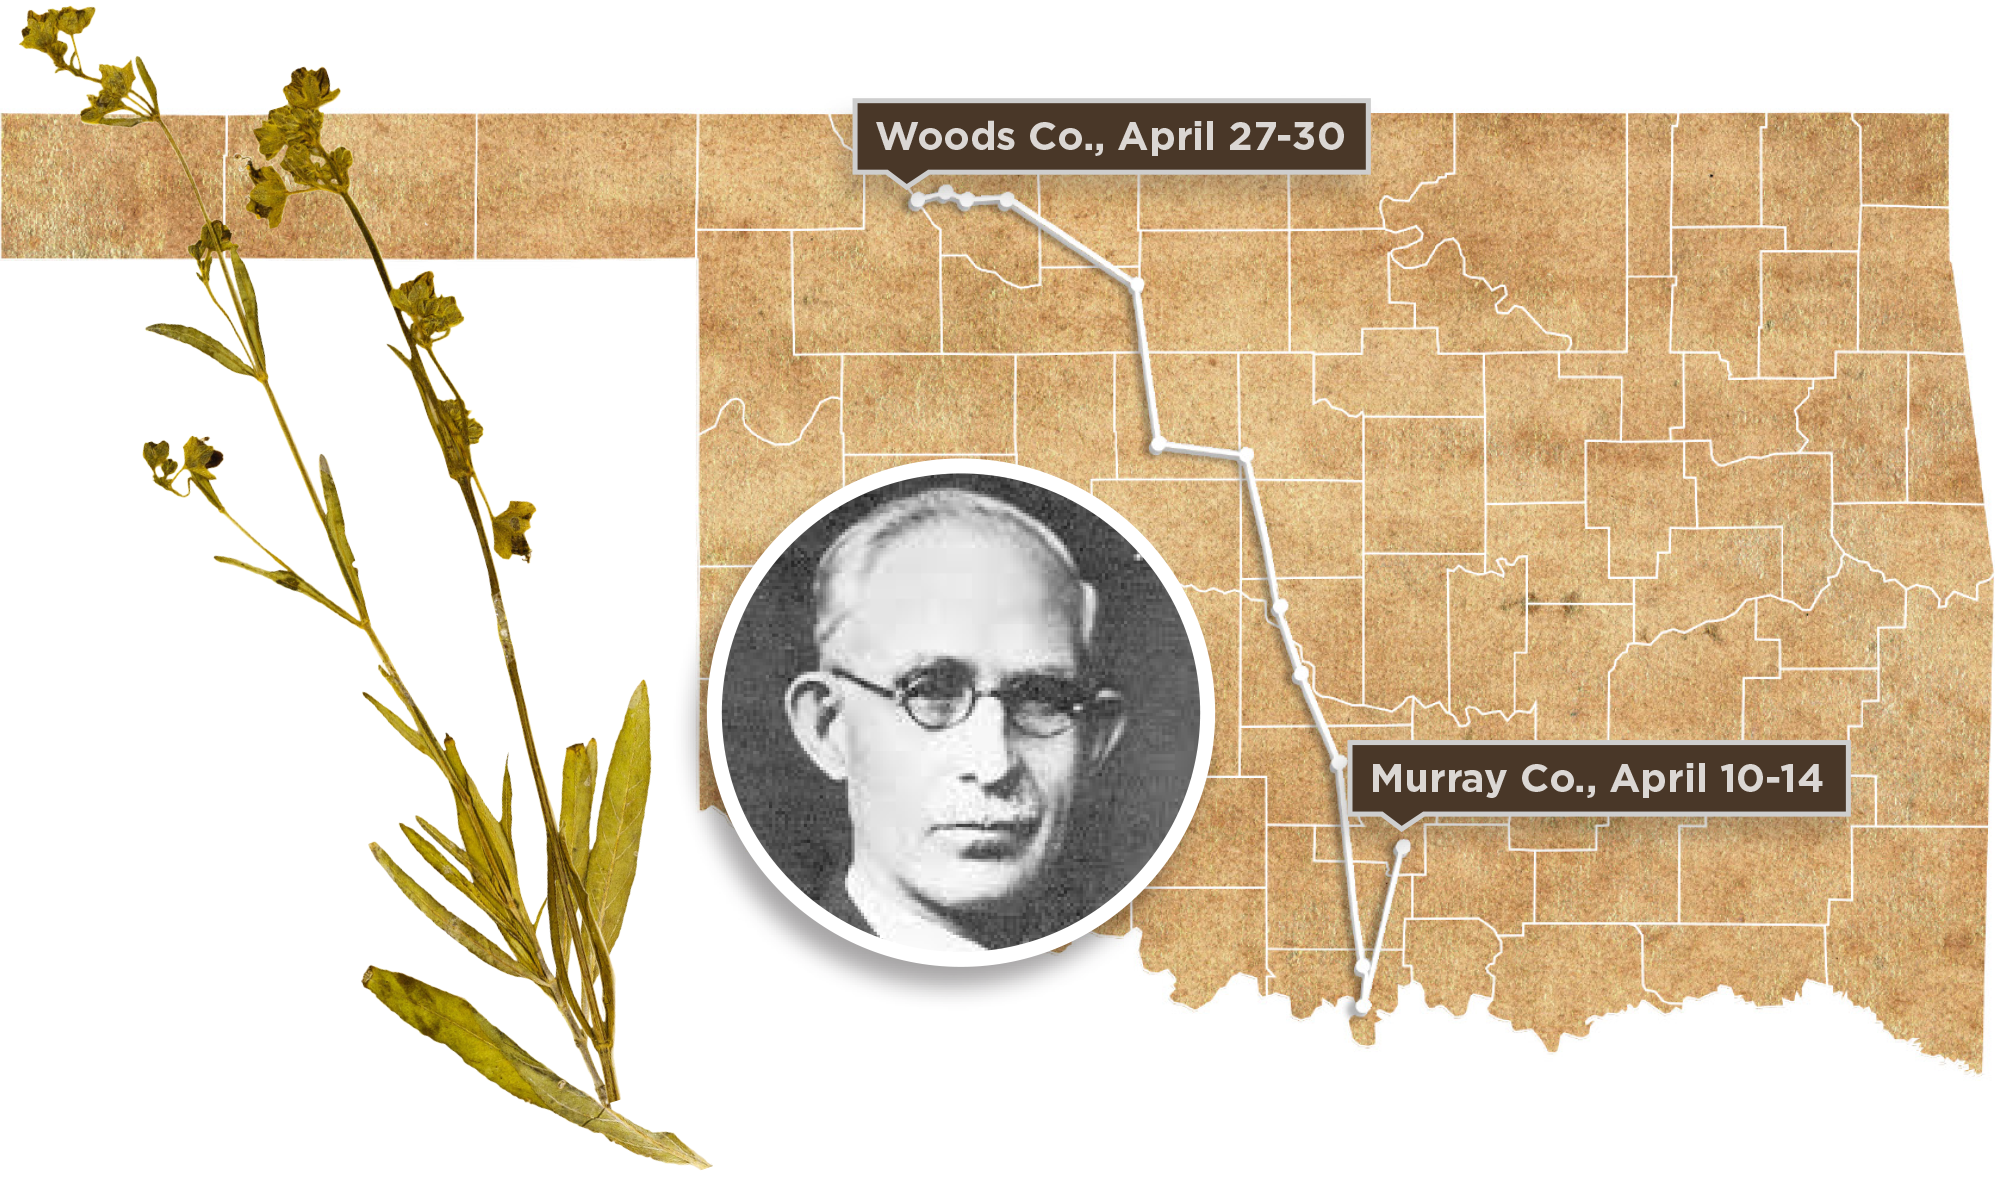 G.W. Stevens pictured over the map of his explorations in Oklahoma, along with a specimen of the White four o'clock plant